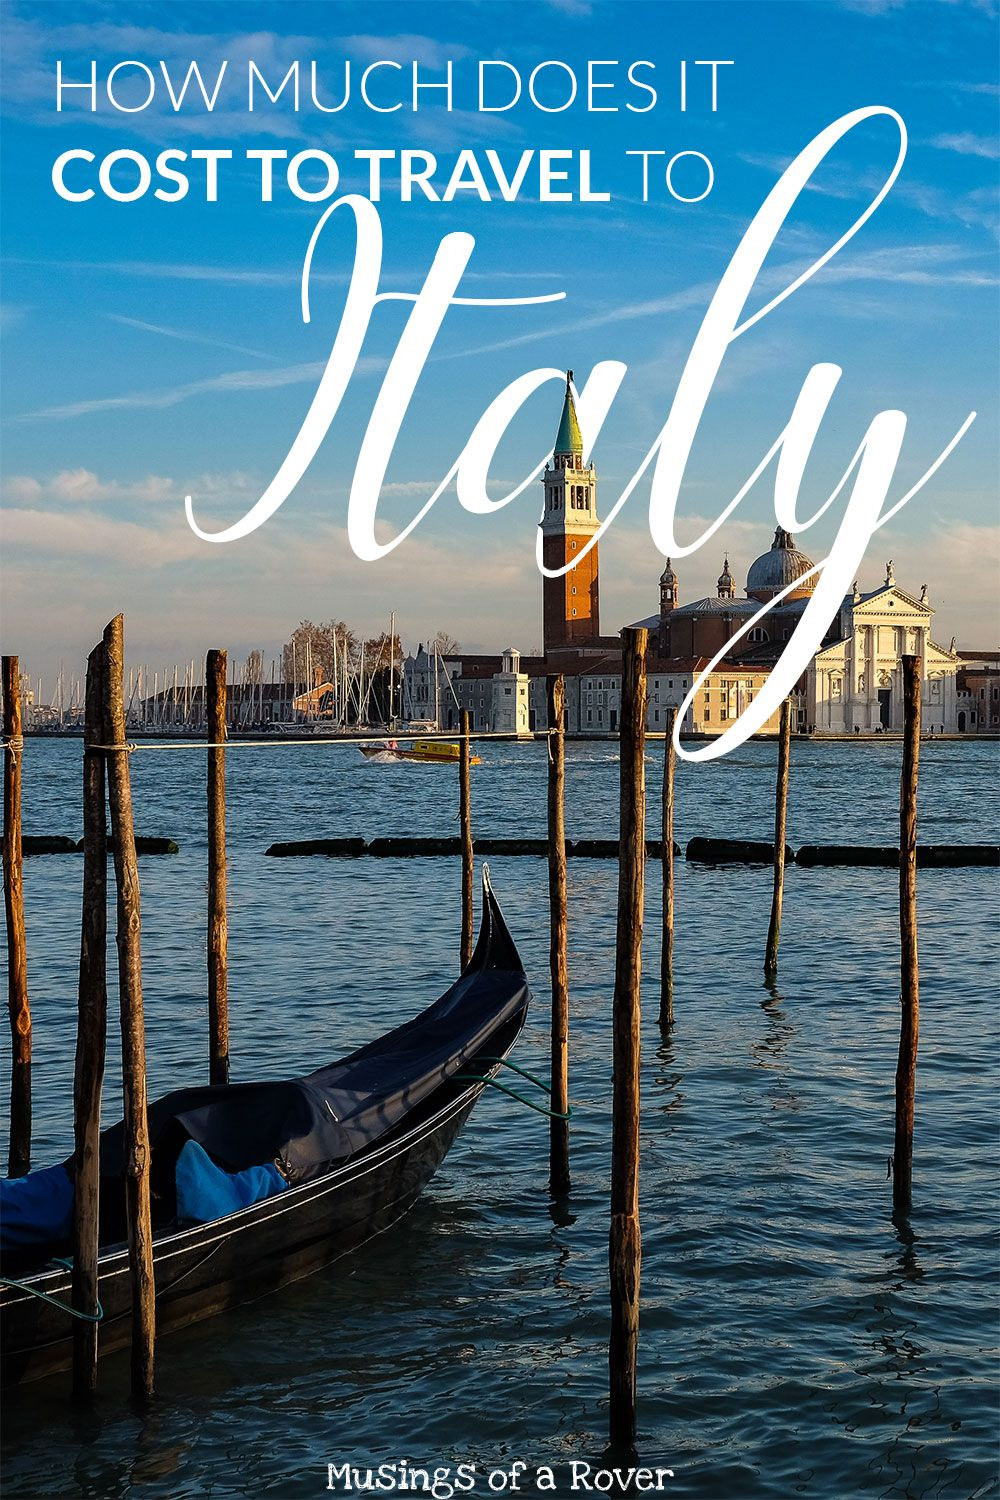 Want to go to Italy but nervous about money? Want to know how much a trip to Italy costs? I've calculated all of my expenses from my 10 day trip to Venice, Florence, & Pisa so you can create an actual budget. Plus tips on how to save money! italy travel tips, italy travel advice, florence travel tips, florence travel advice, venice travel tips, venice travel advice, italy budget, florence budget, venice budget, italy cost, florence cost, venice cost